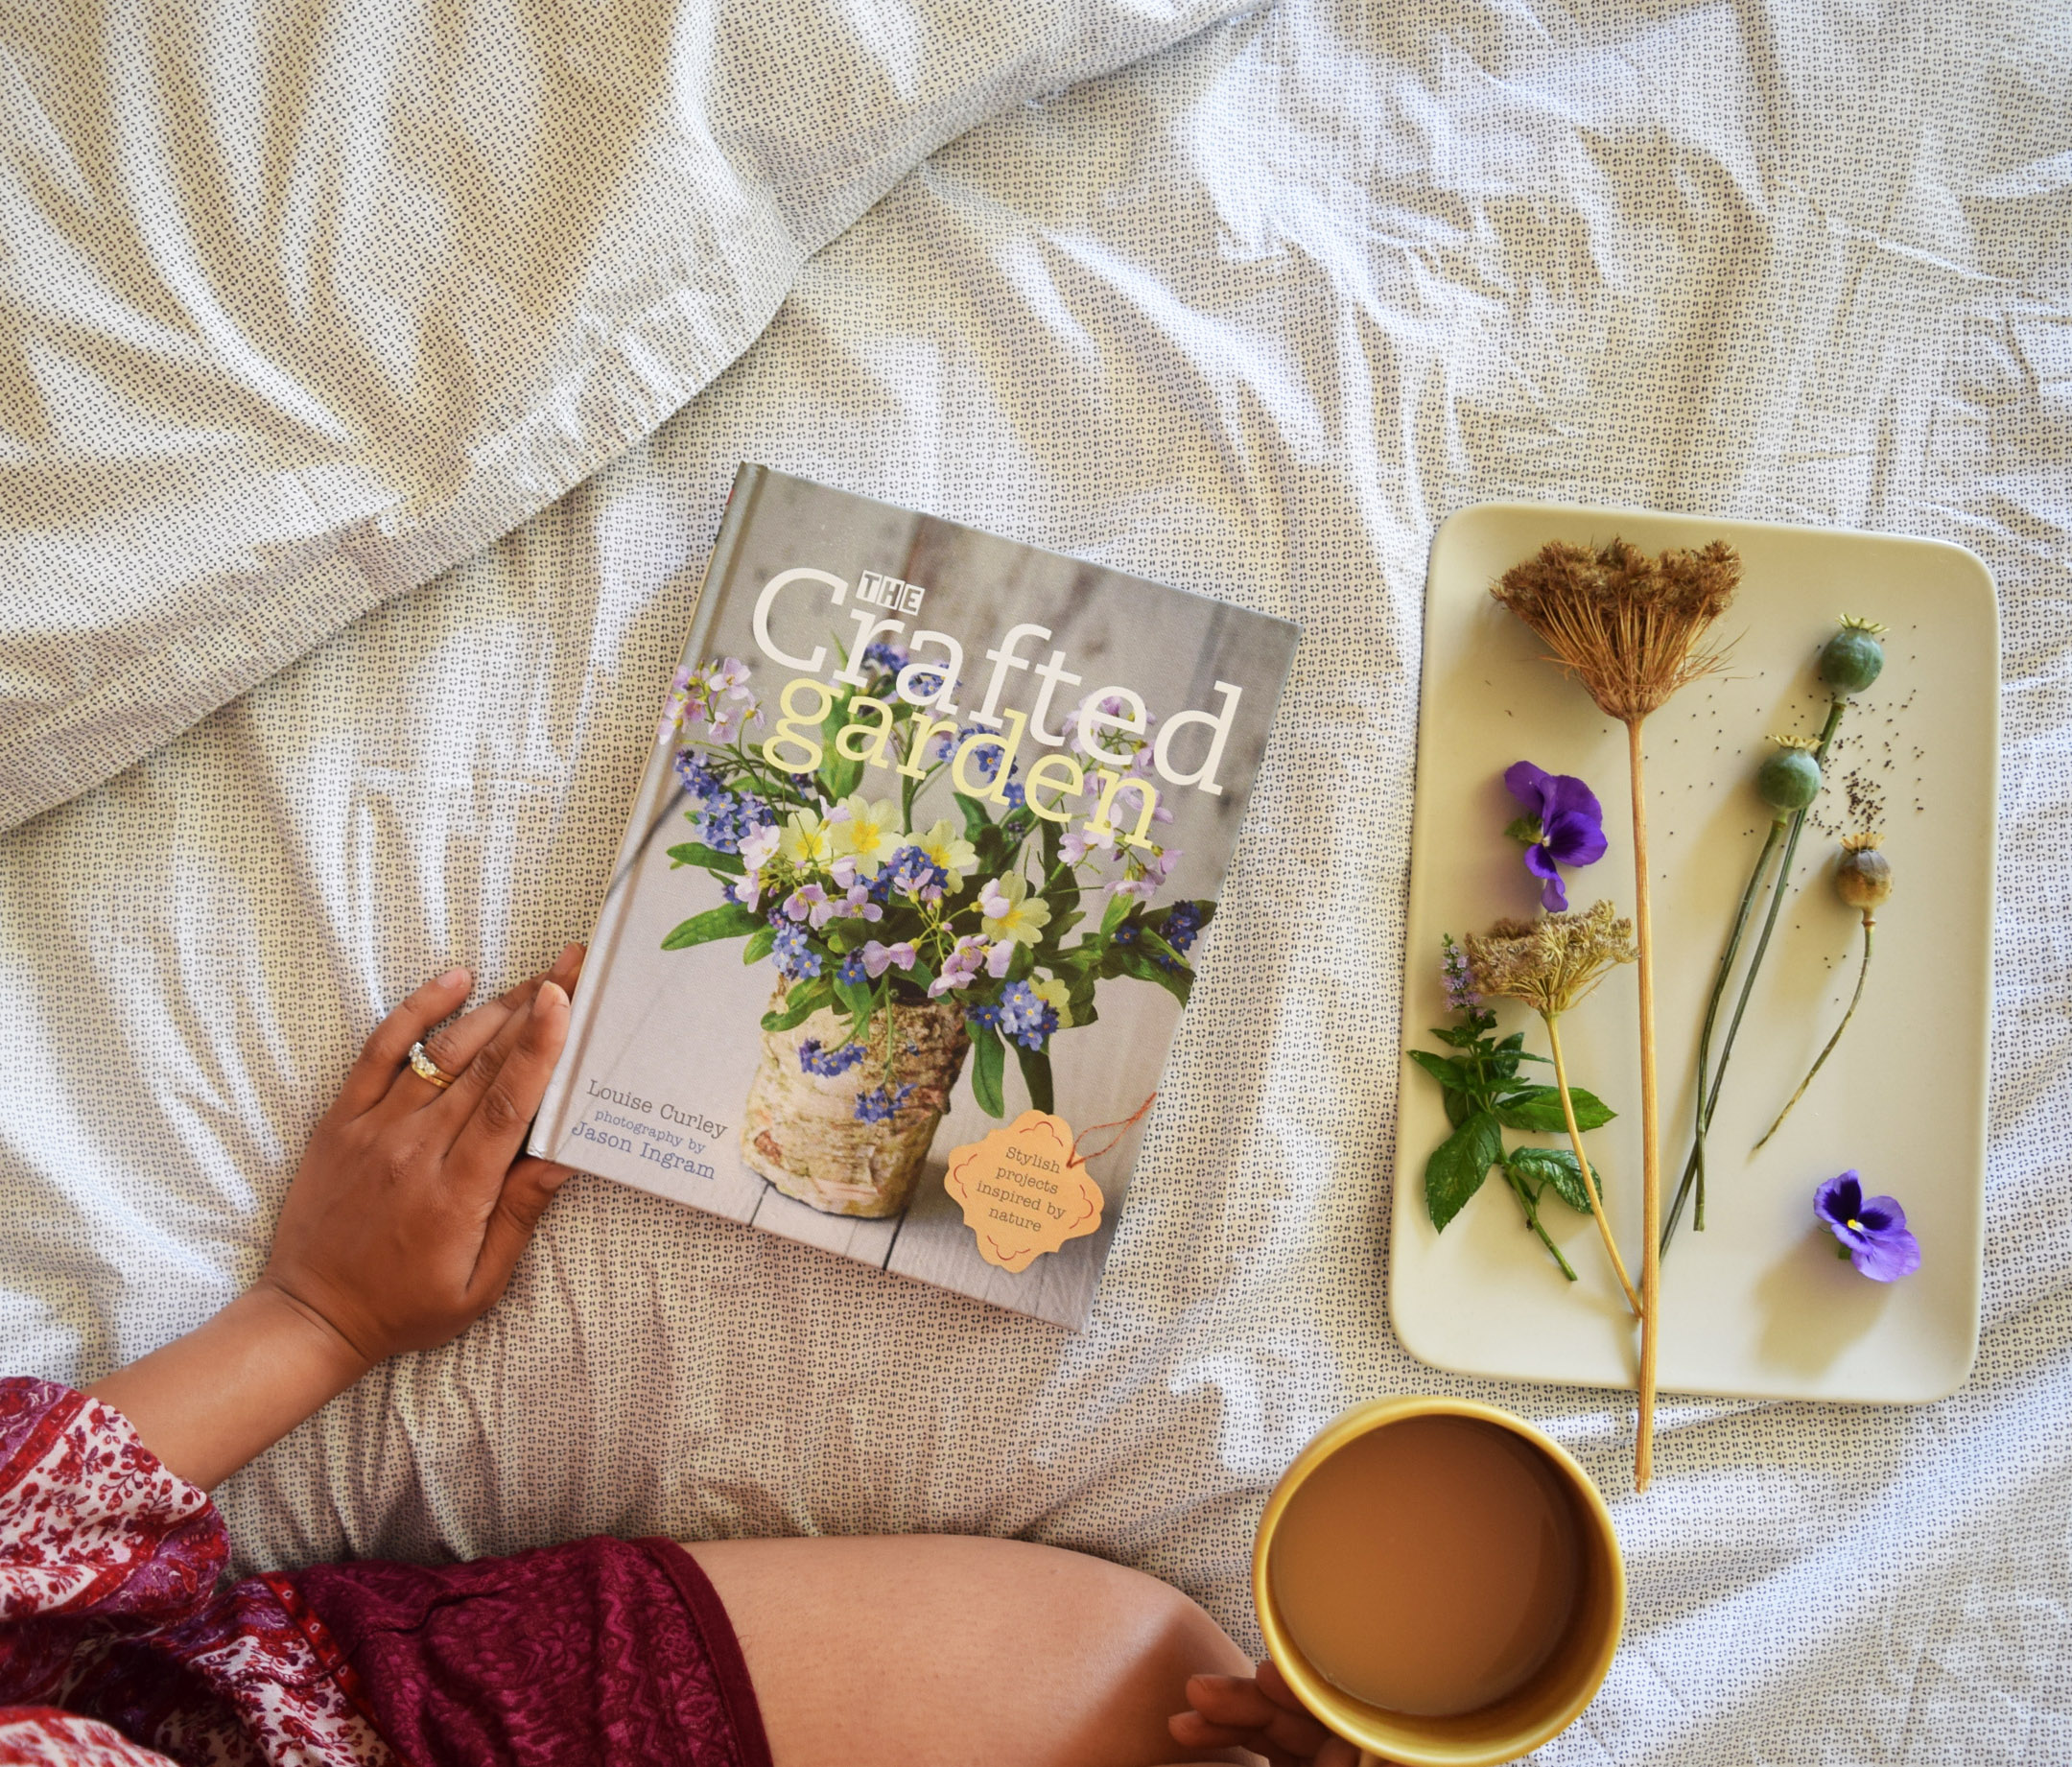 New Book! The Crafted Garden